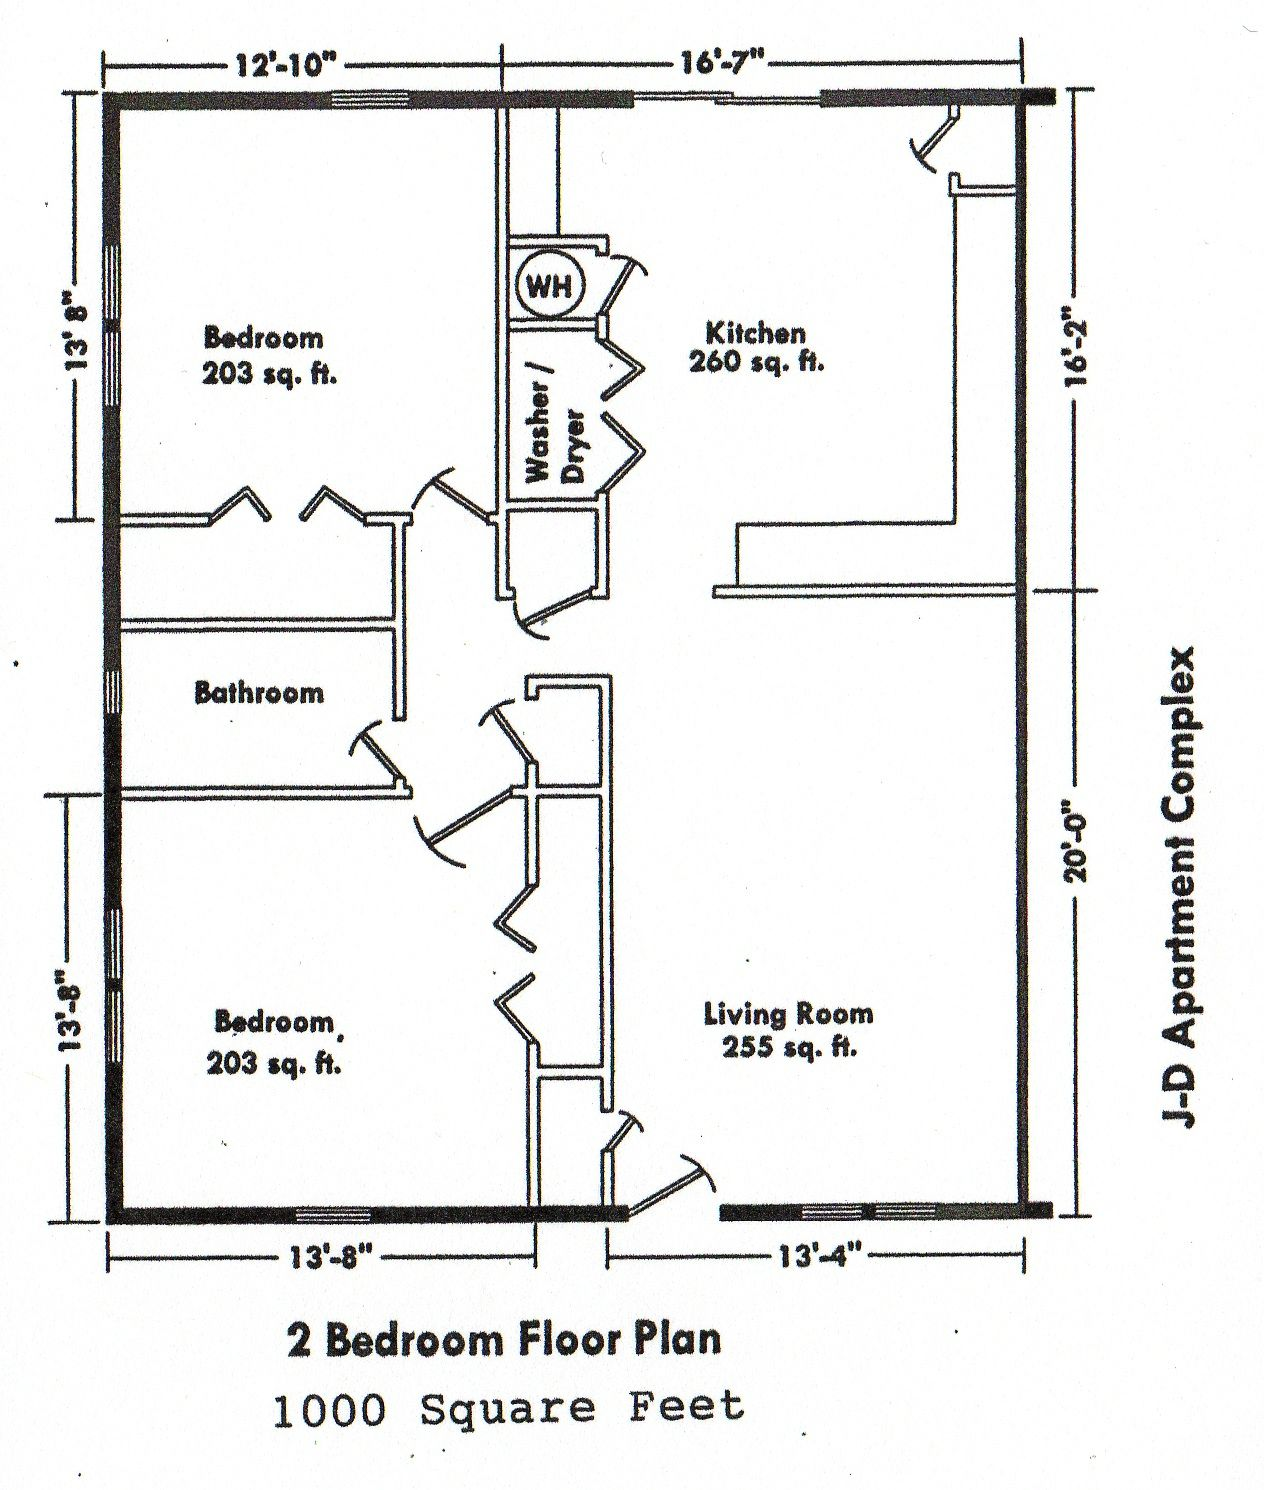 Small house floor plans 2 bedrooms master bedroom suite for Addition floor plans